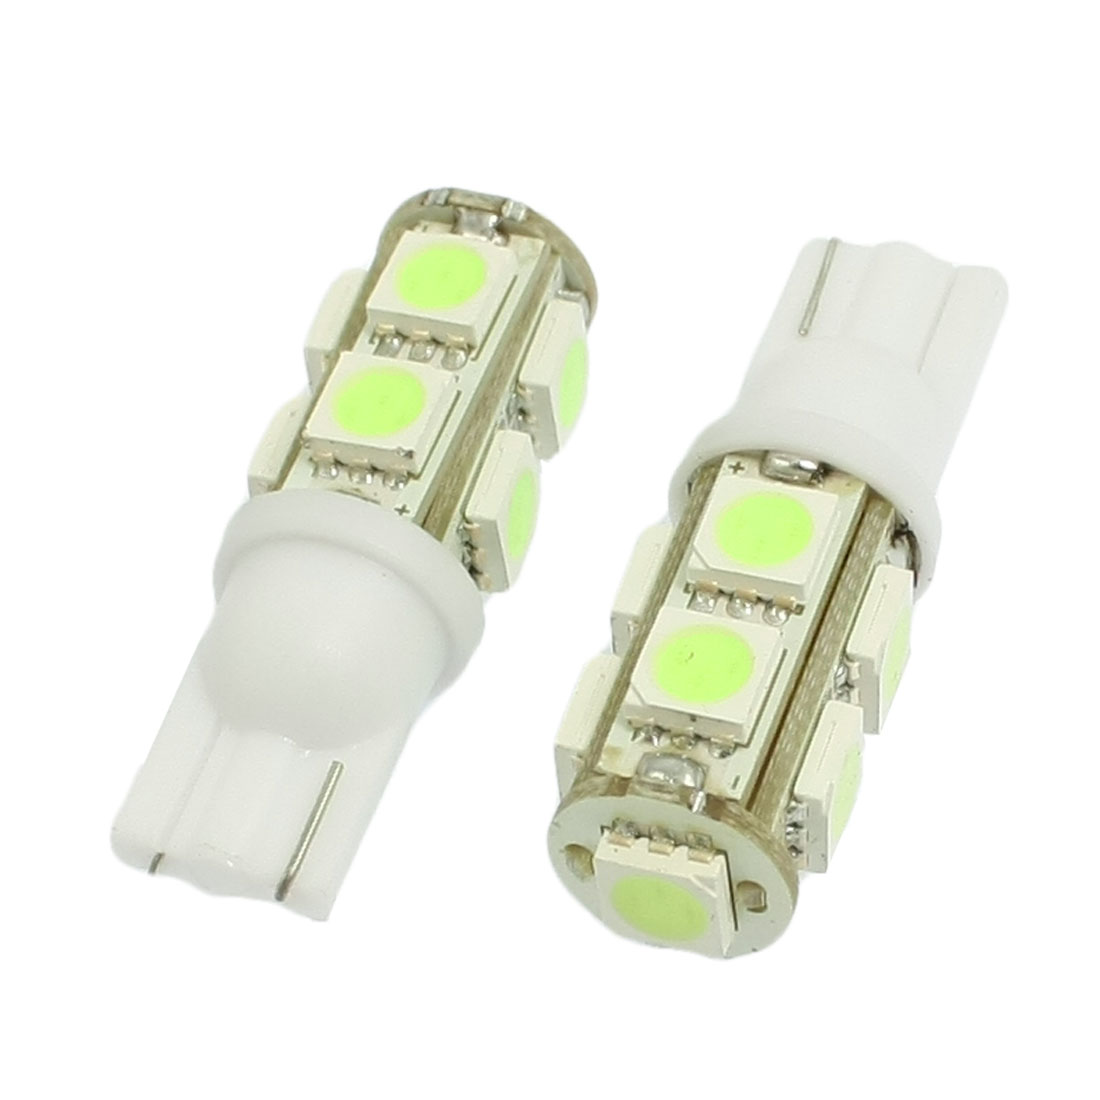 2 Pcs Car Auto T10 Cold Blue 5050 9-SMD LED Bulb Light Lamp